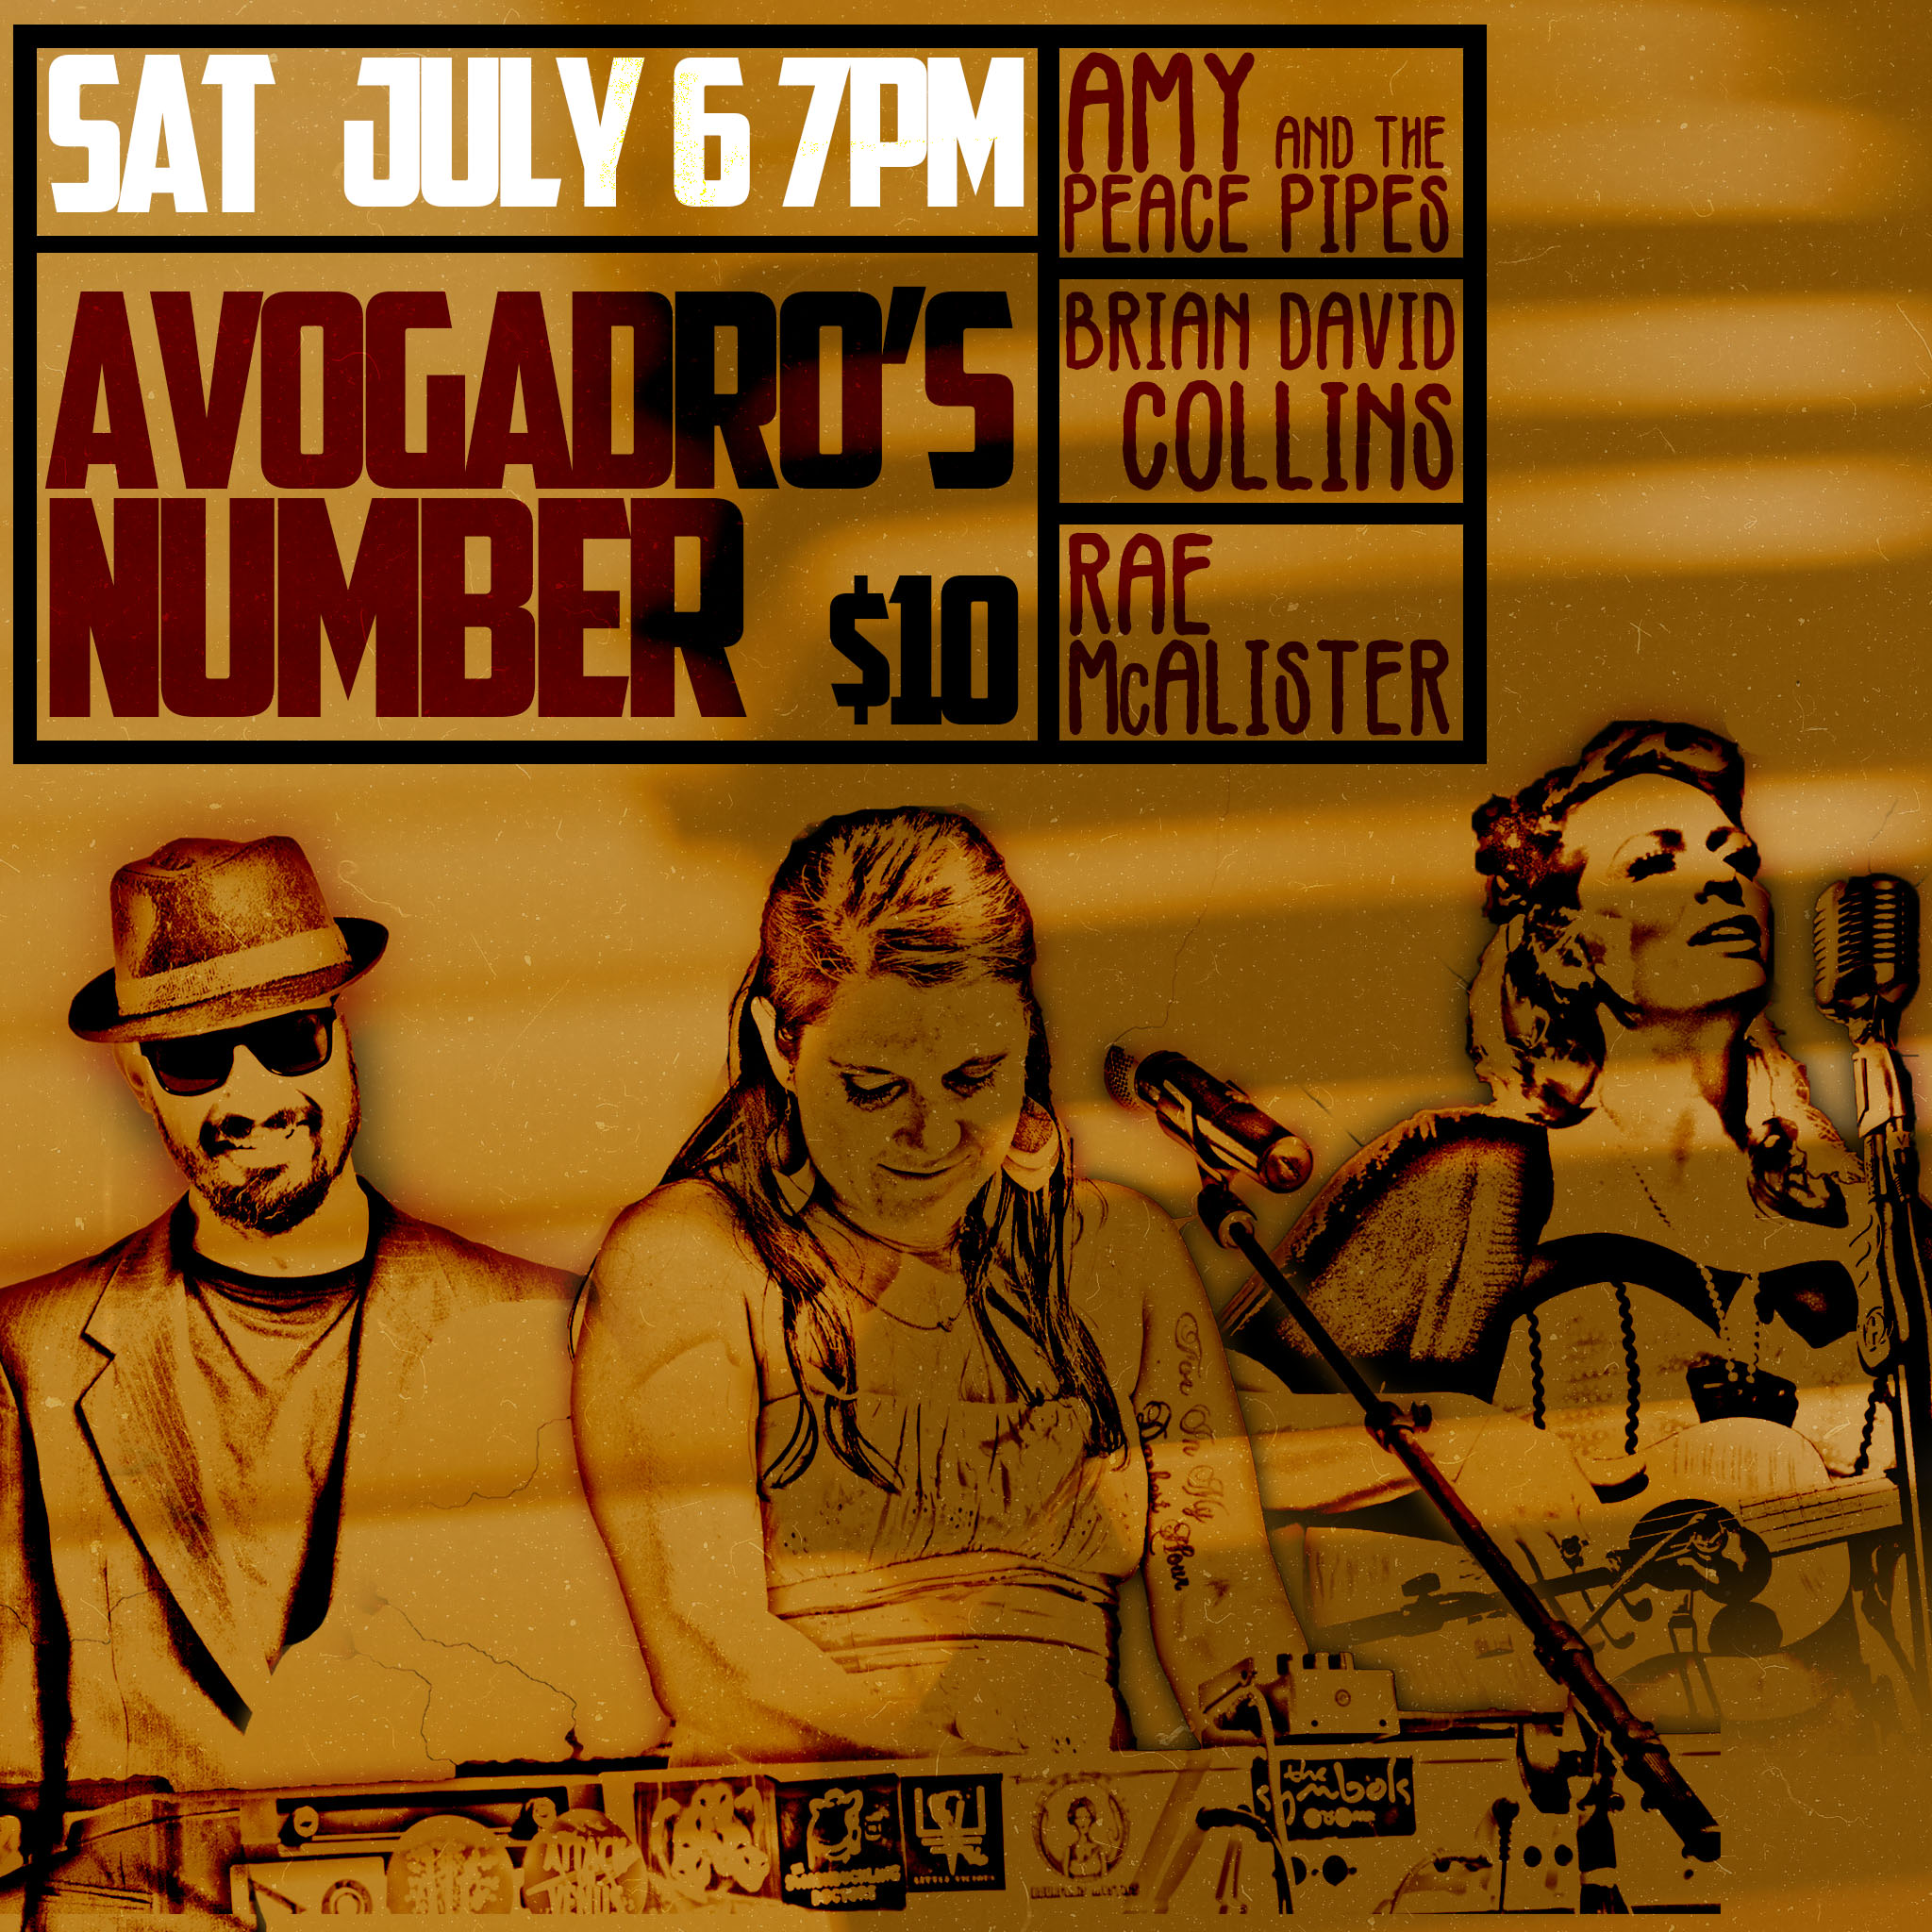 Avogadro's Number w/ Rae McAlister and Brian David Collins